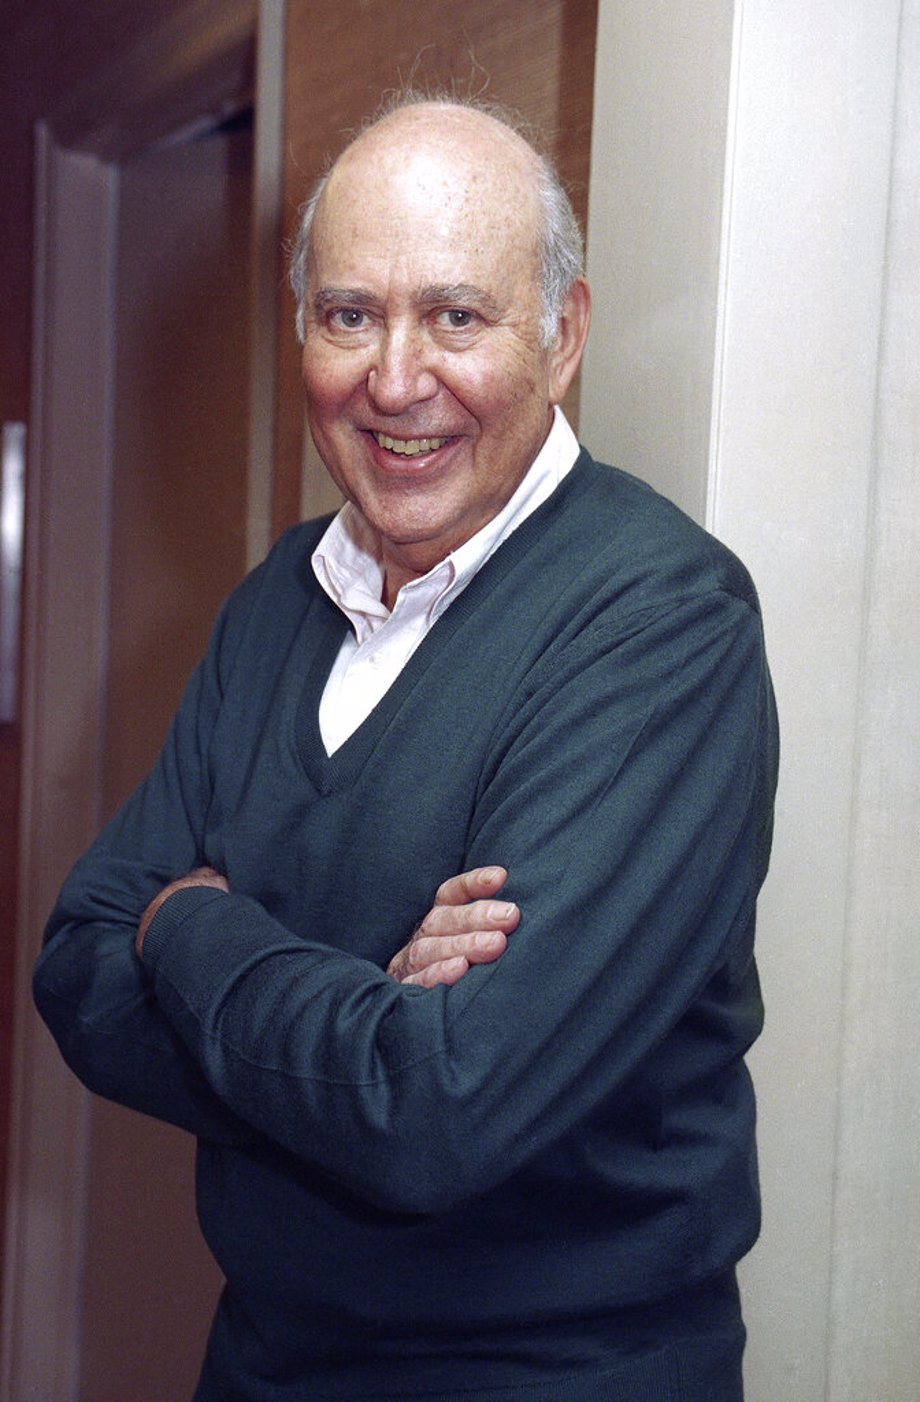 1993 file photo, writer-comedian and film director Carl Reiner, 71, appears after an interview in New York.